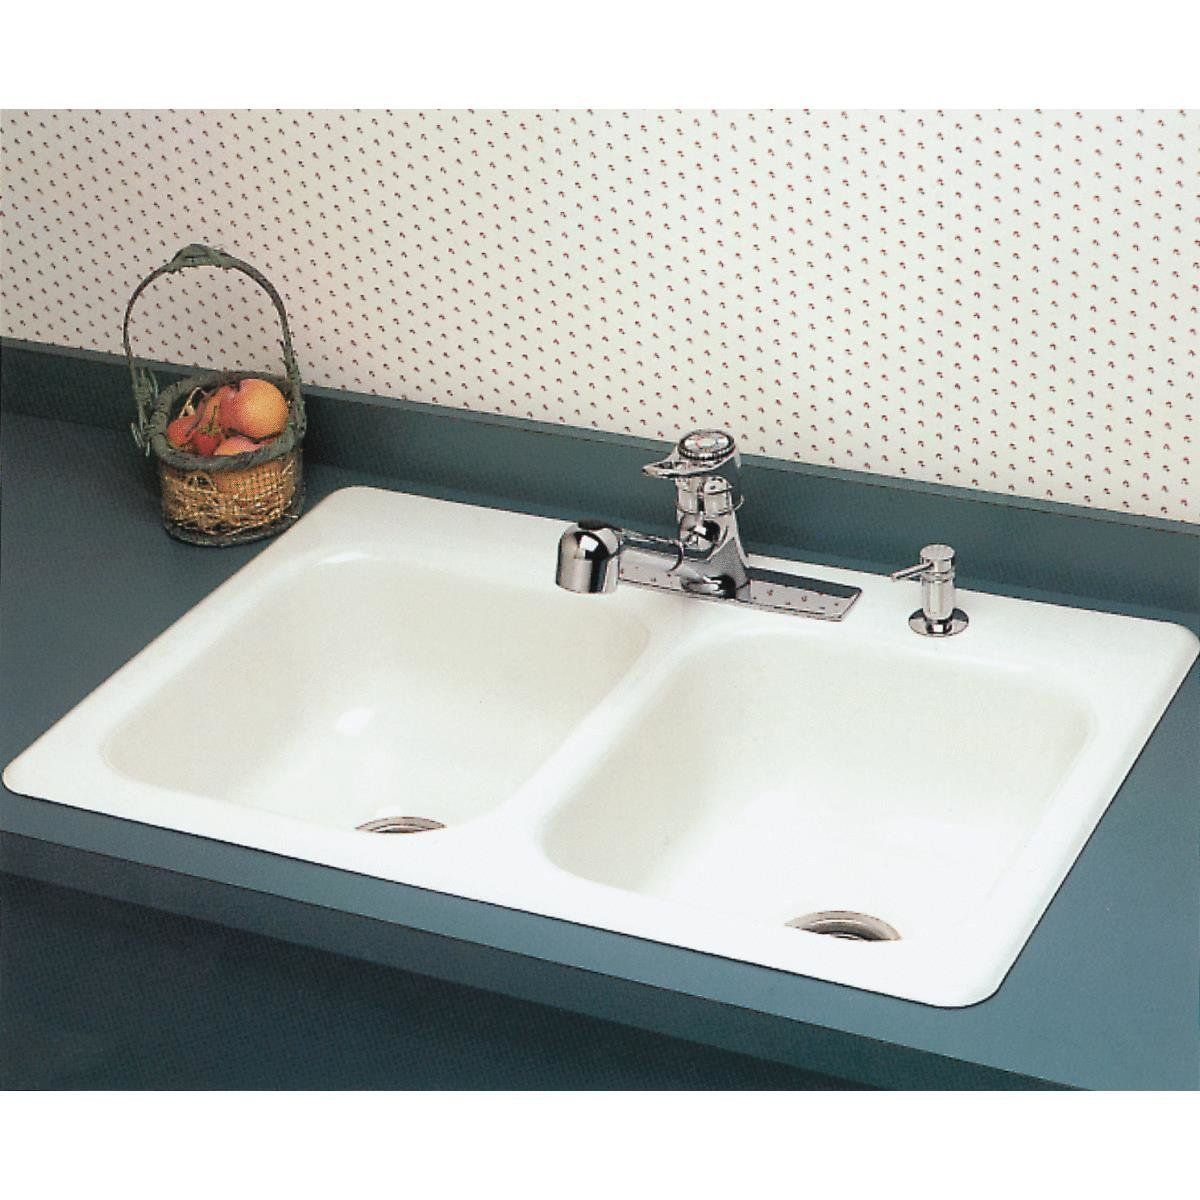 Find the perfect blend of form and function when designing a new looking to buy a new kitchen sink but not sure where to start check out our kitchen sink buying guide to get yourself started solutioingenieria Gallery